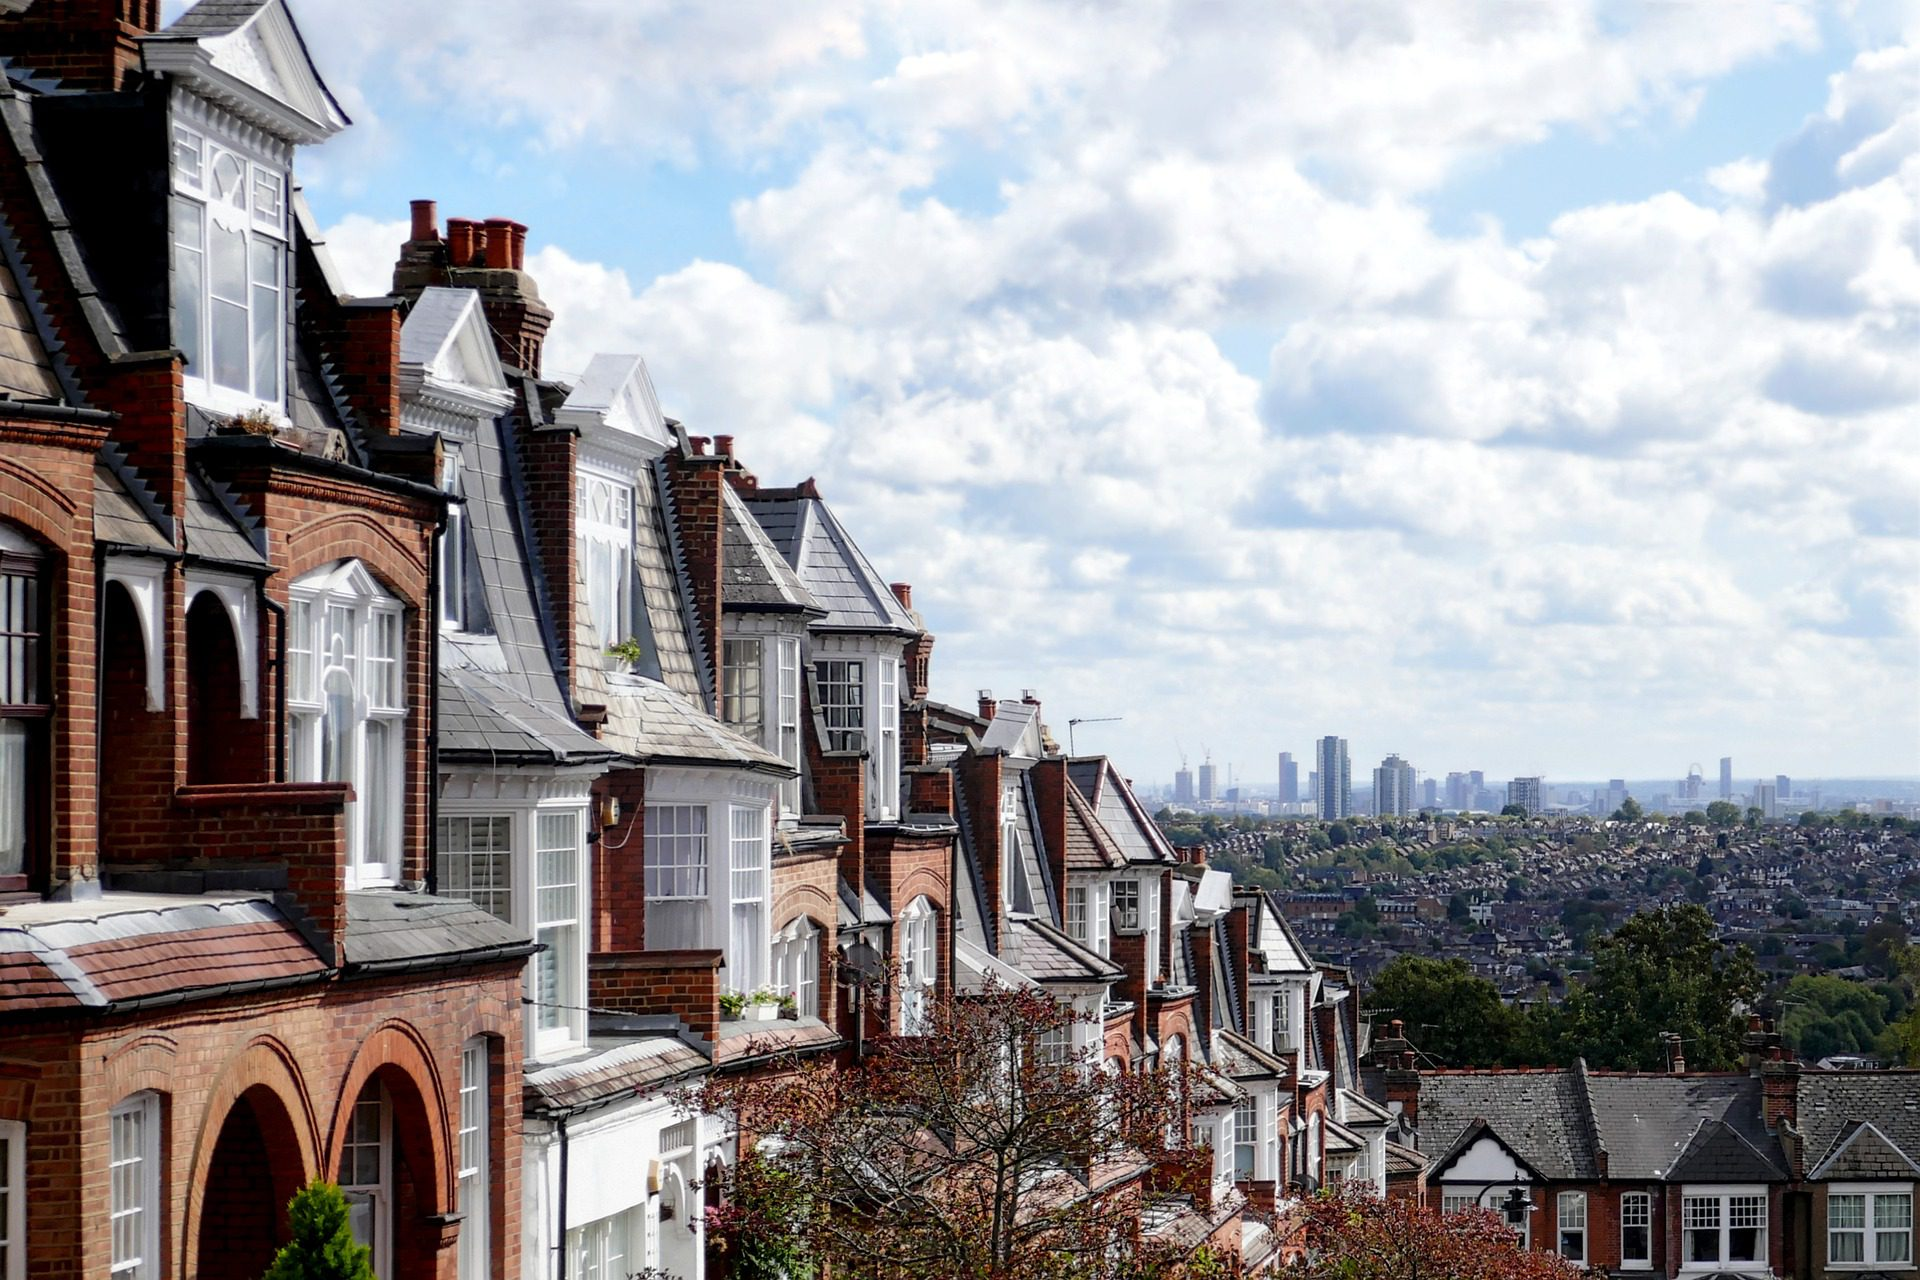 London exodus accelerates as property preferences and work lives change